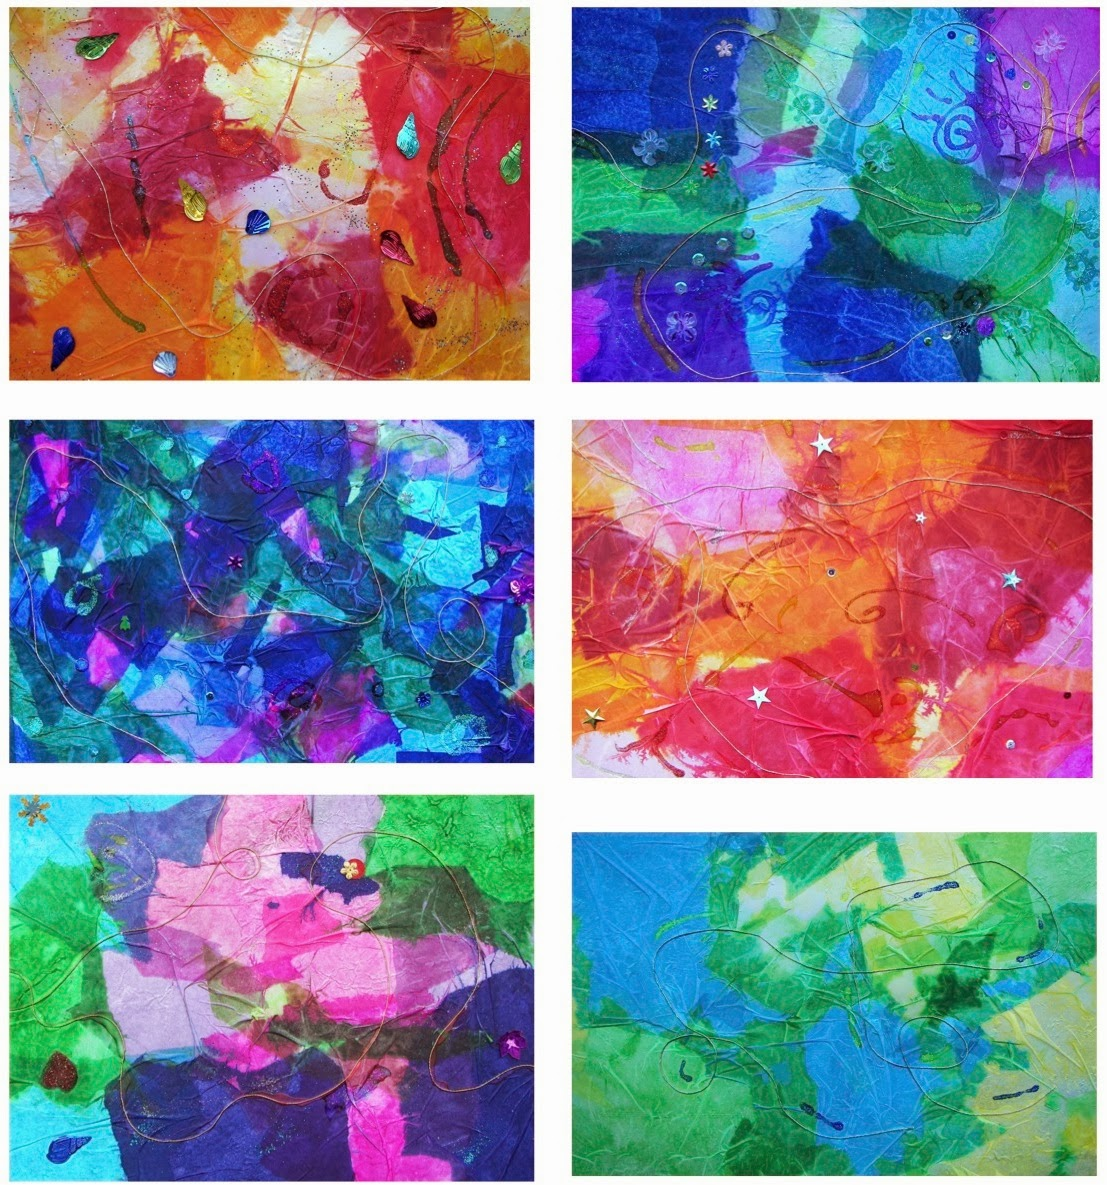 Tissue Paper Designs The Rolling Artroom Abstract Tissue Paper Designs 4 6 Grade